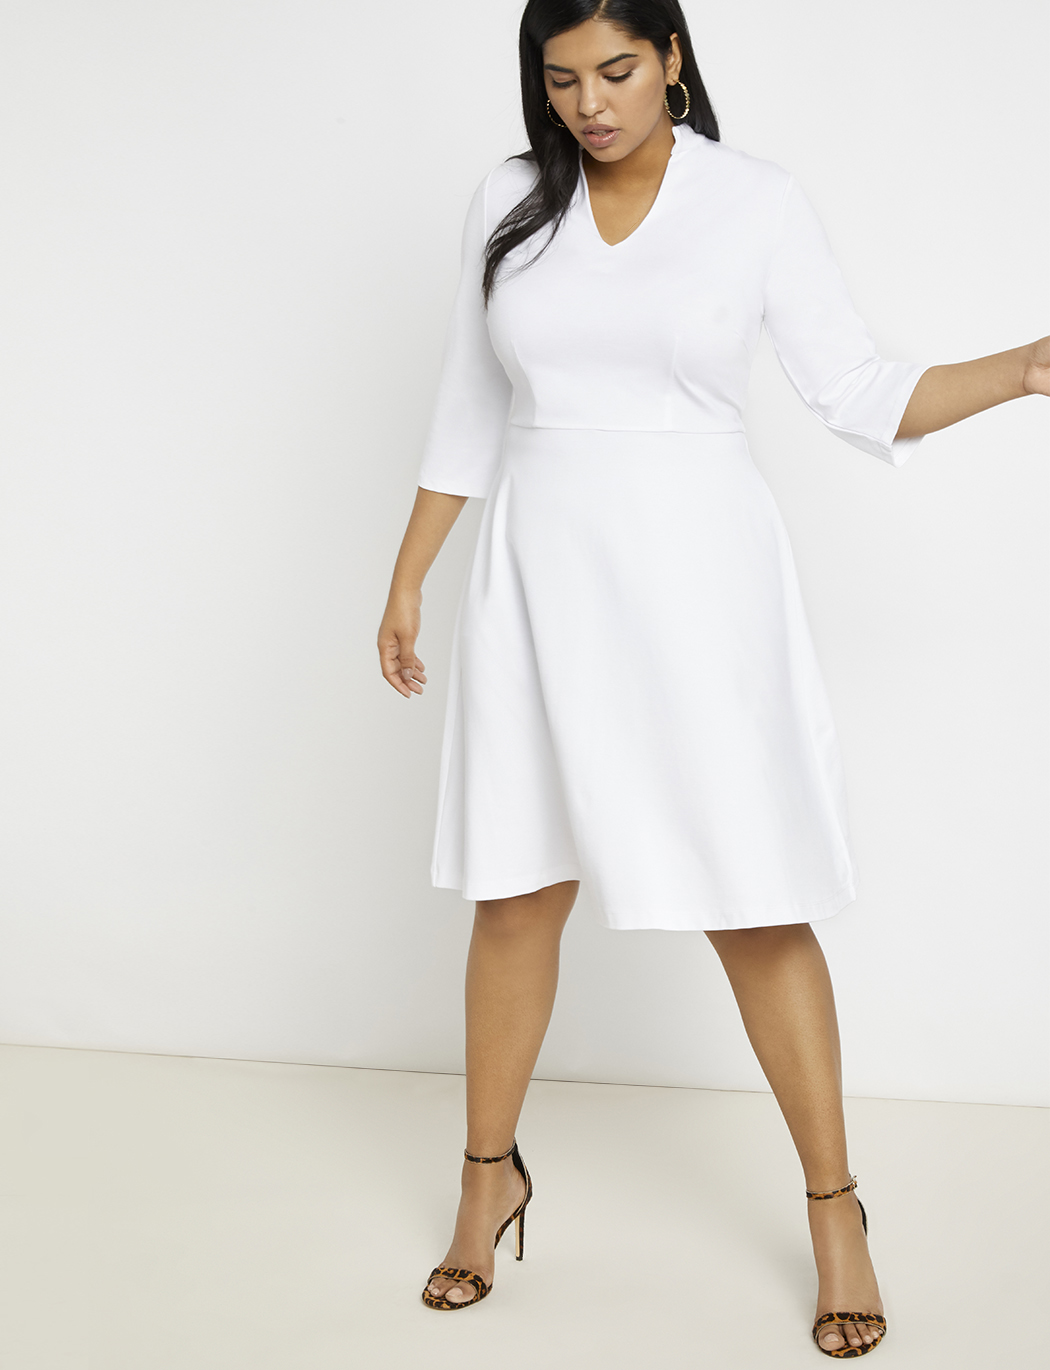 V-Neck A-Line Dress | Women\'s Plus Size Dresses | ELOQUII